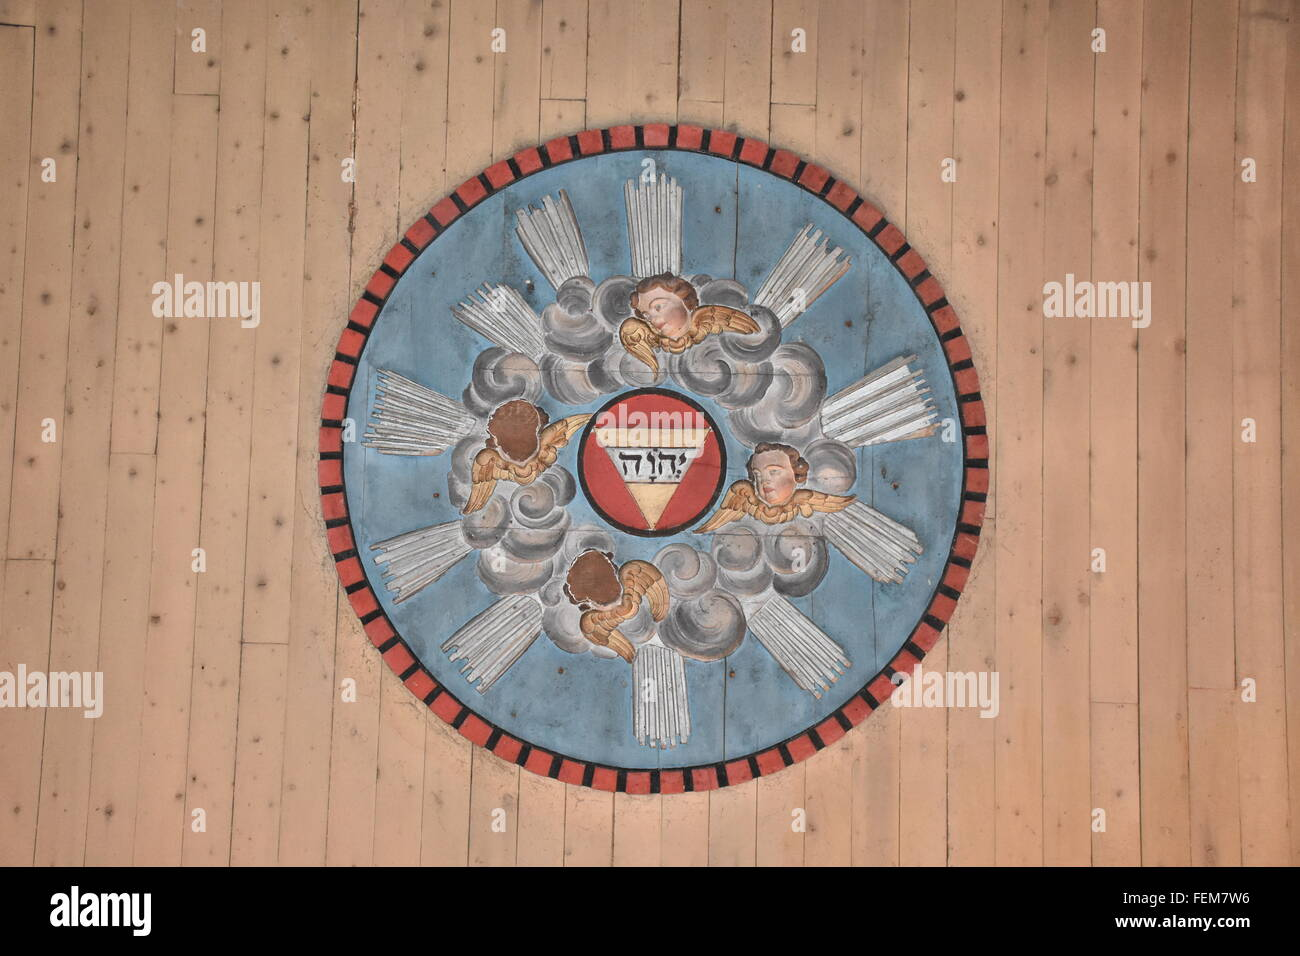 Ceiling rose Croute church Gers France - Stock Image